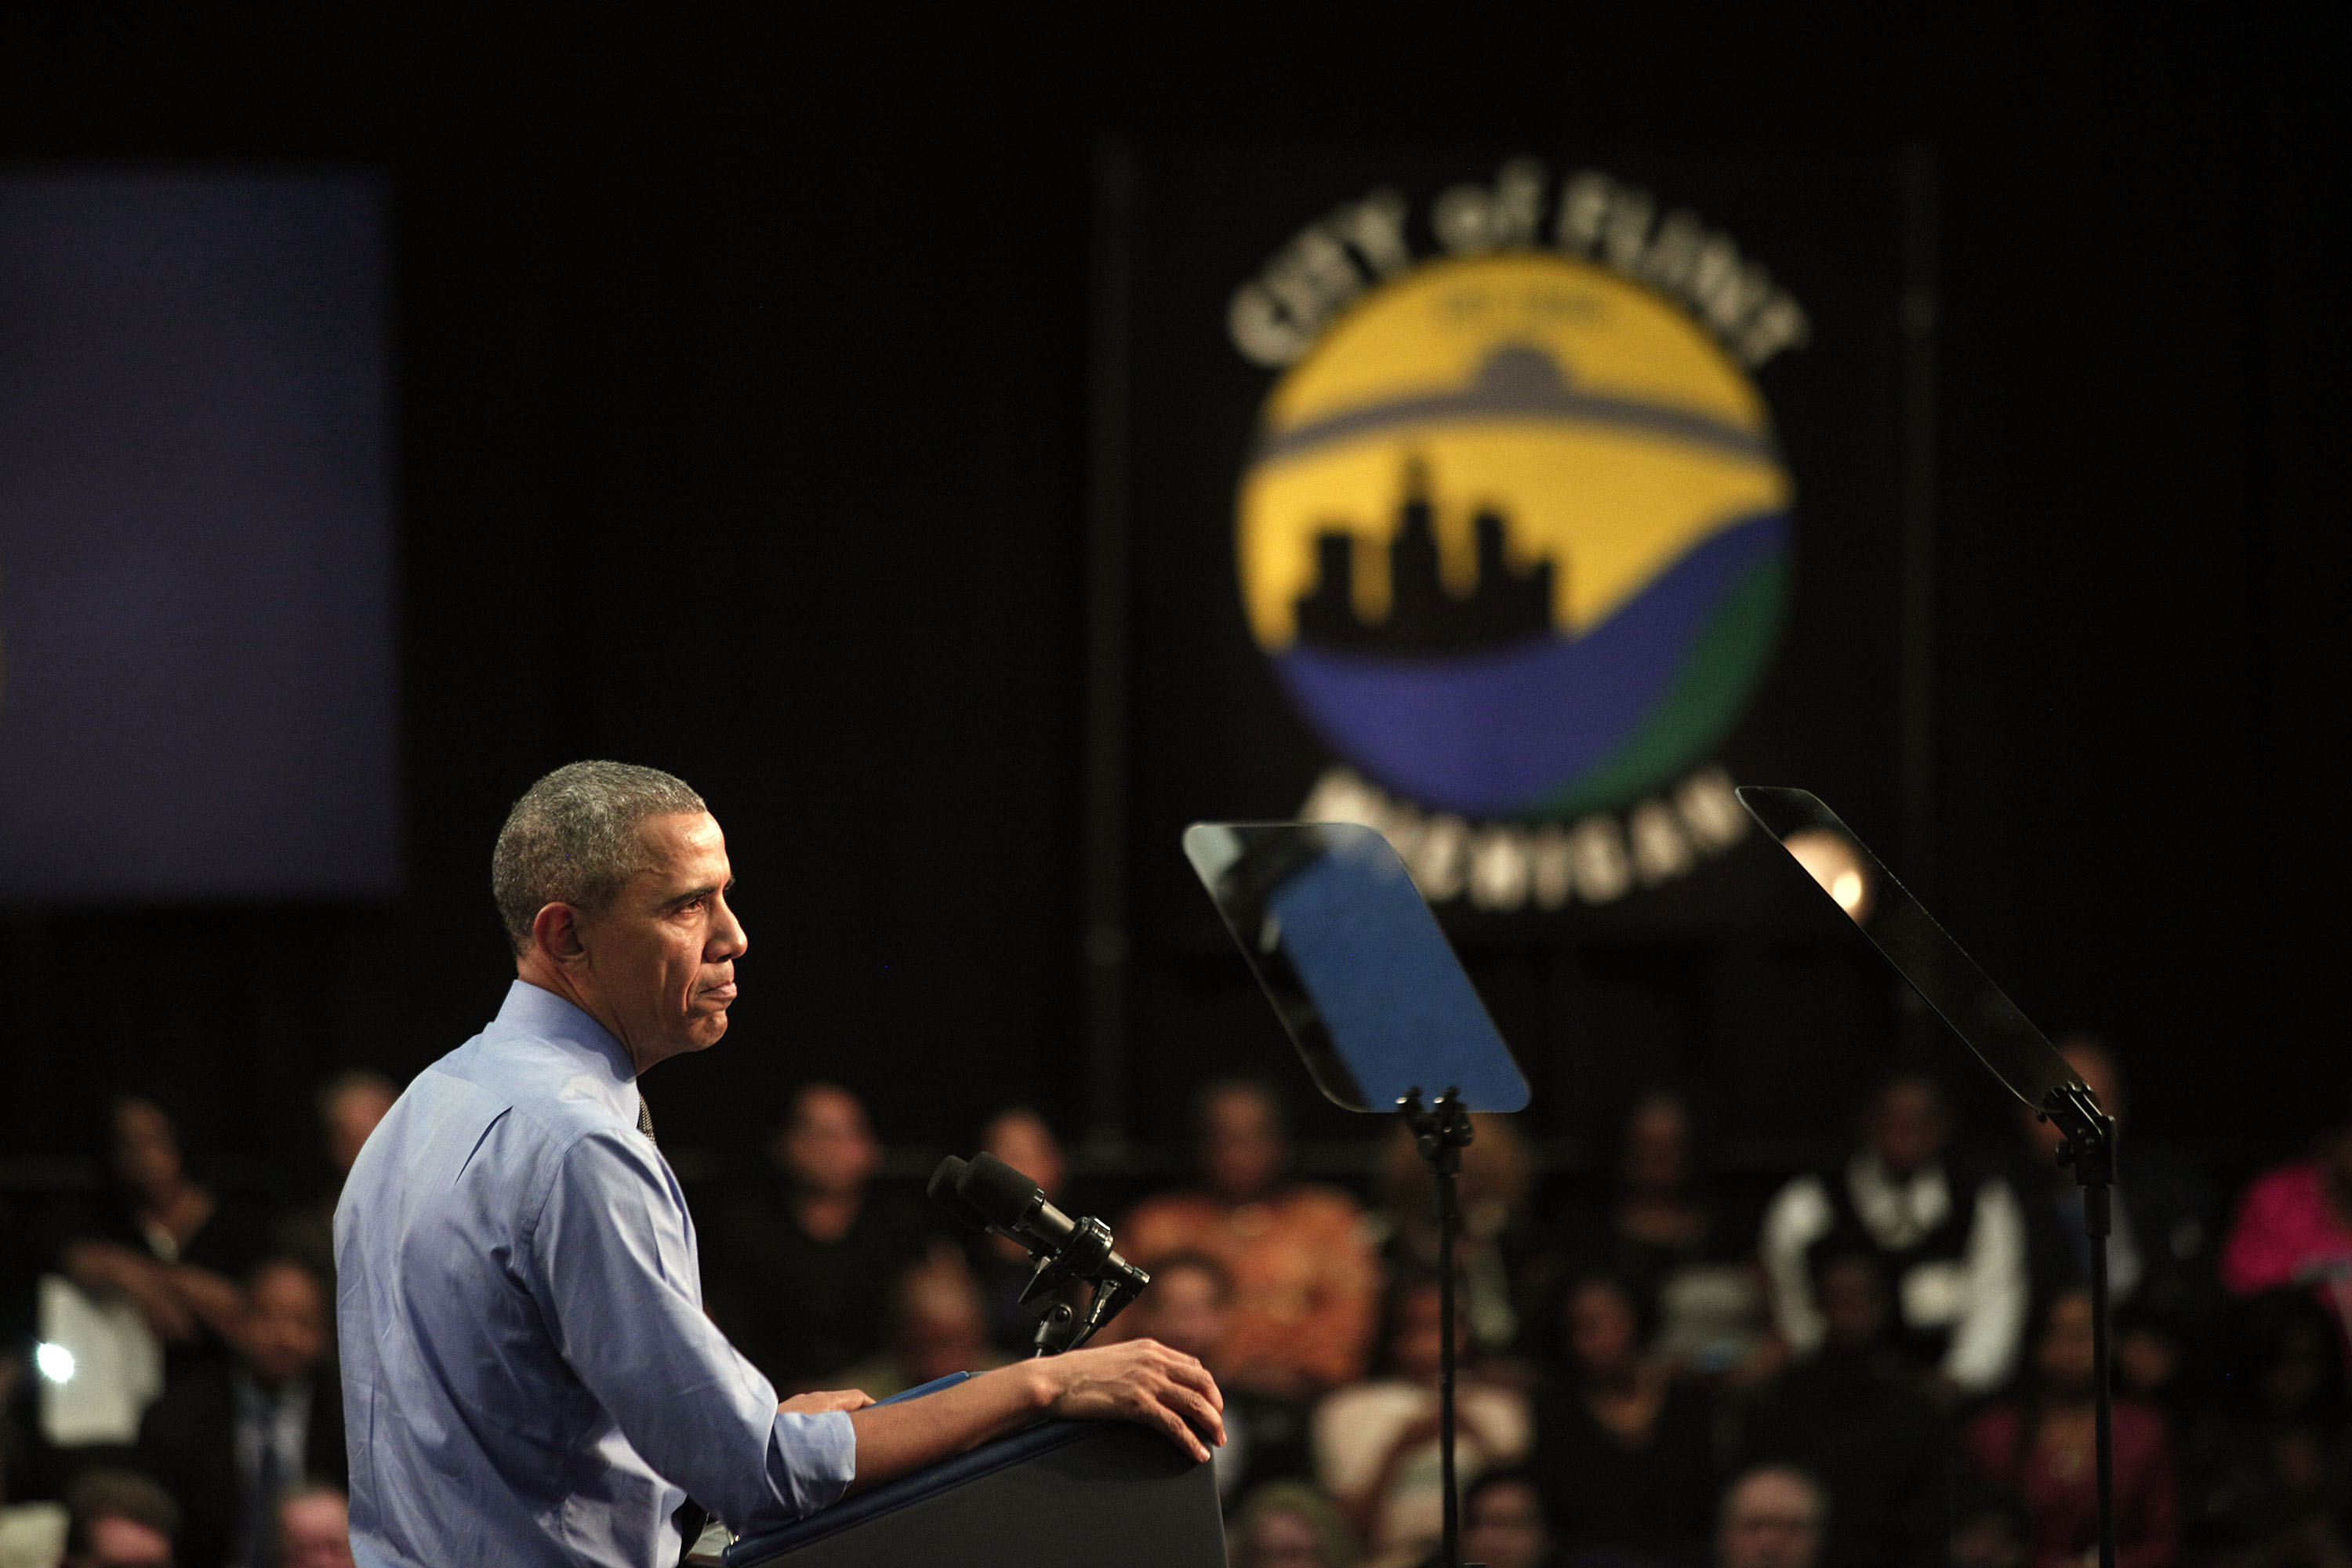 President Barack Obama speaks in Flint, Michigan about the water contamination crisis on May 4, 2016. (Bill Pugliano/Getty Images)